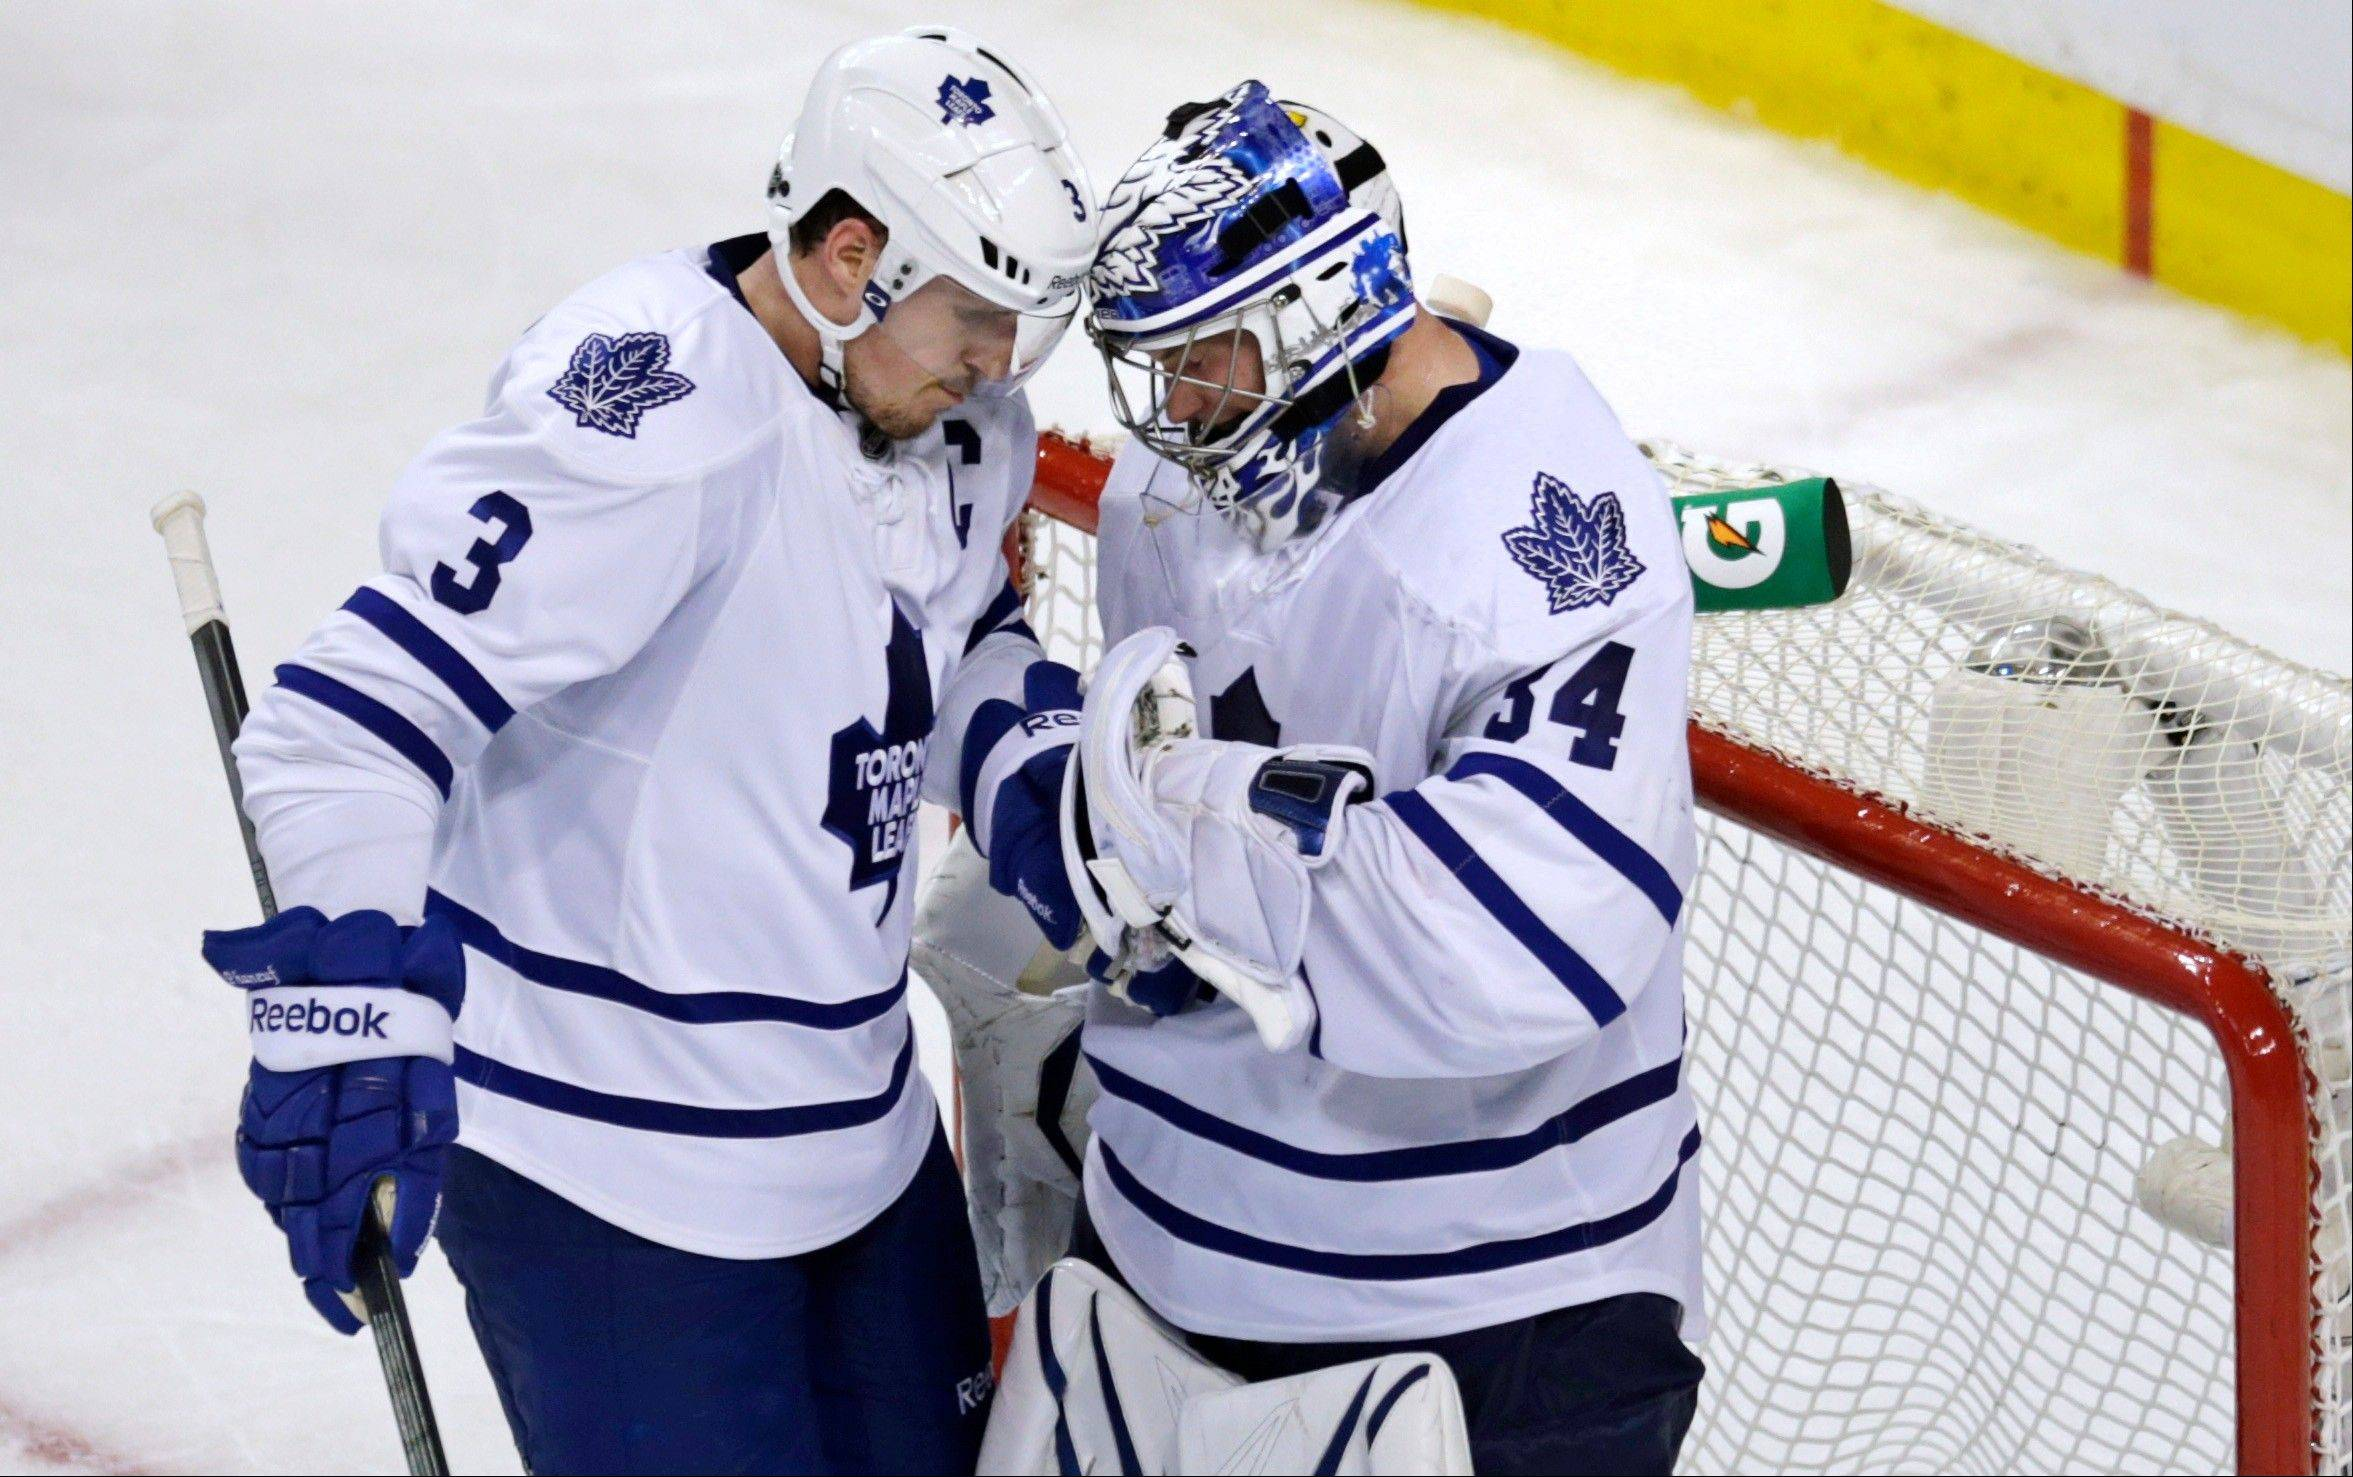 Toronto Maple Leafs goalie James Reimer, right, is congratulated by teammate Dion Phaneuf after the Maple Leafs defeated the Boston Bruins 2-1 in Game 5 of an NHL hockey Stanley Cup playoff series, in Boston on Friday, May 10, 2013. (AP Photo/Charles Krupa)